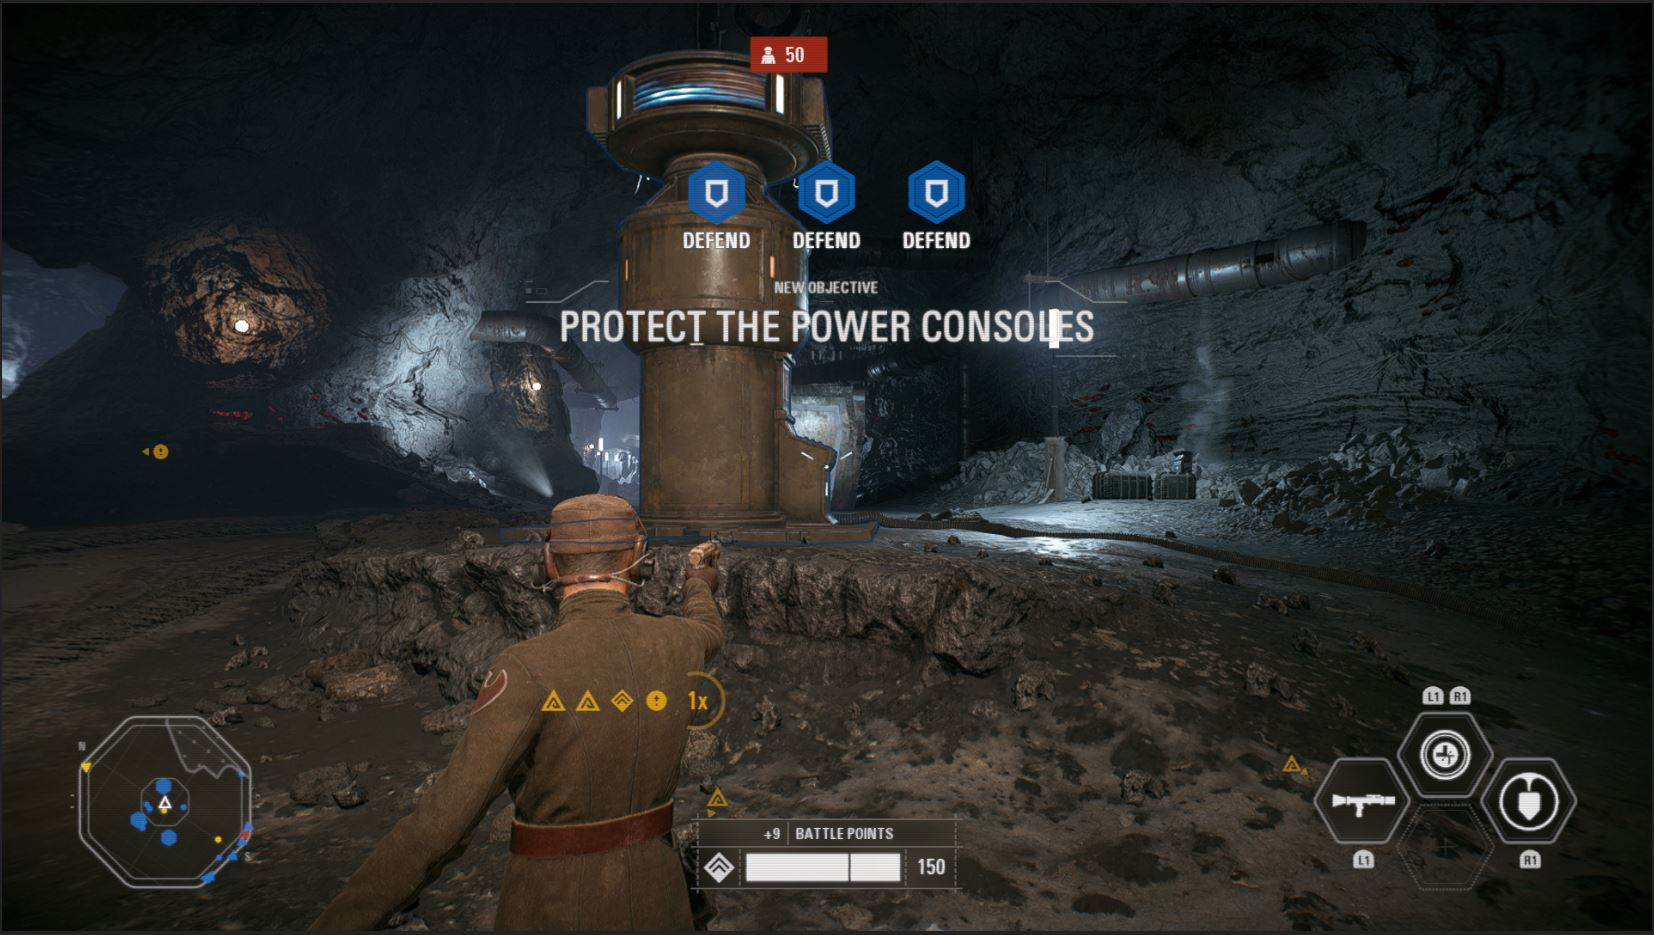 Easiest ways to unlock a hero in EA Star Wars: Battlefront II